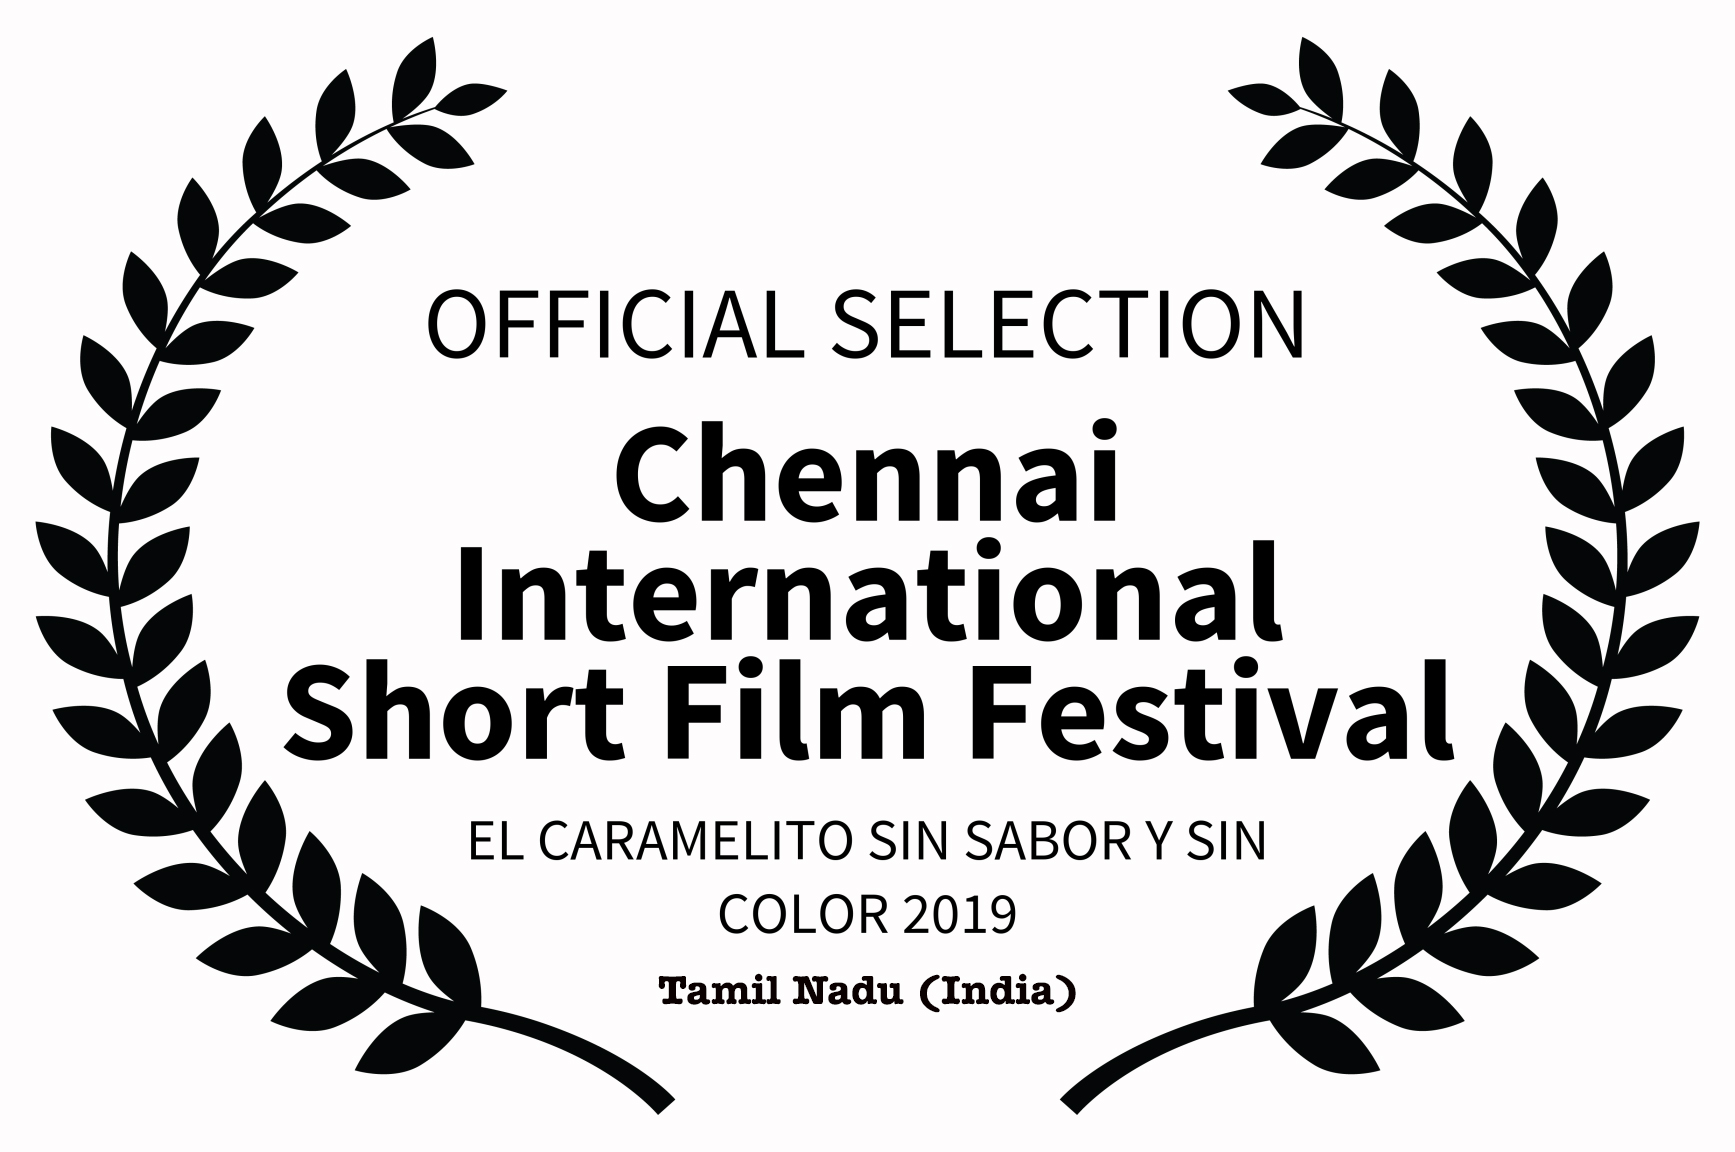 OFFICIAL SELECTION - Chennai Internation